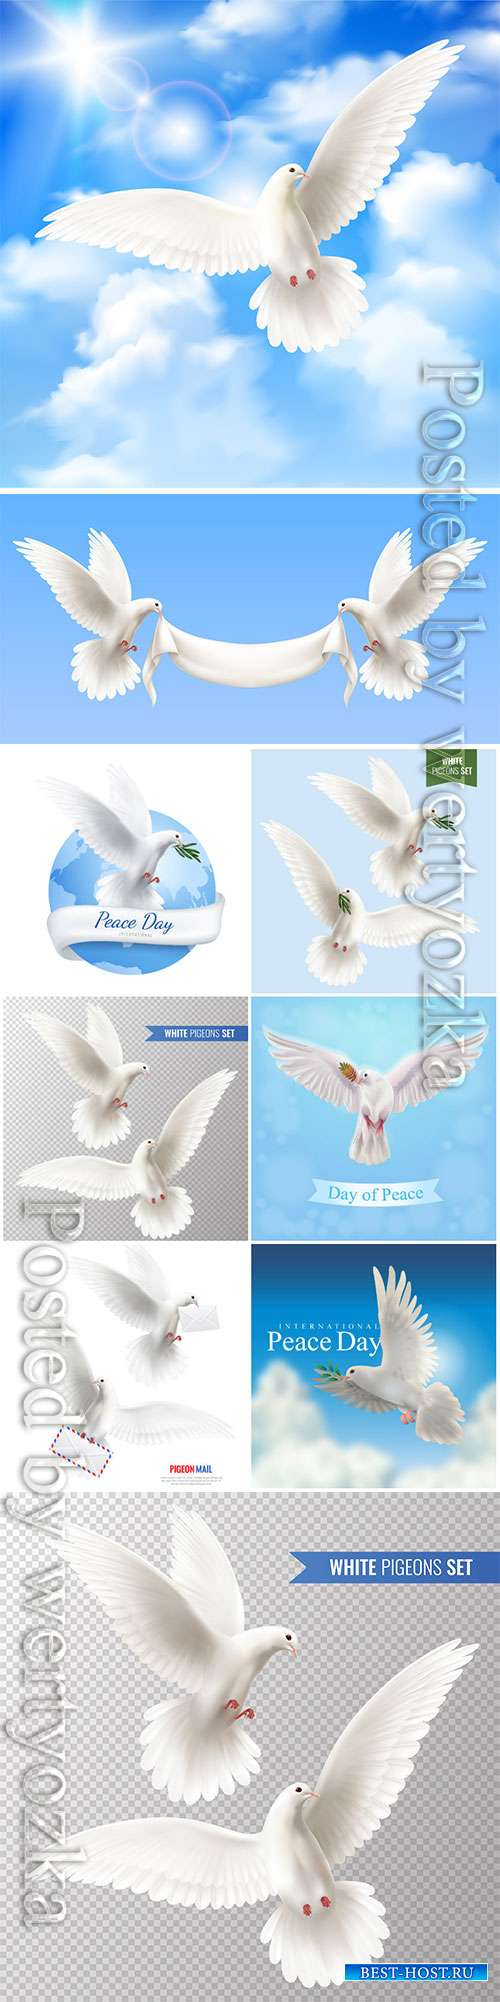 White pigeons vector set